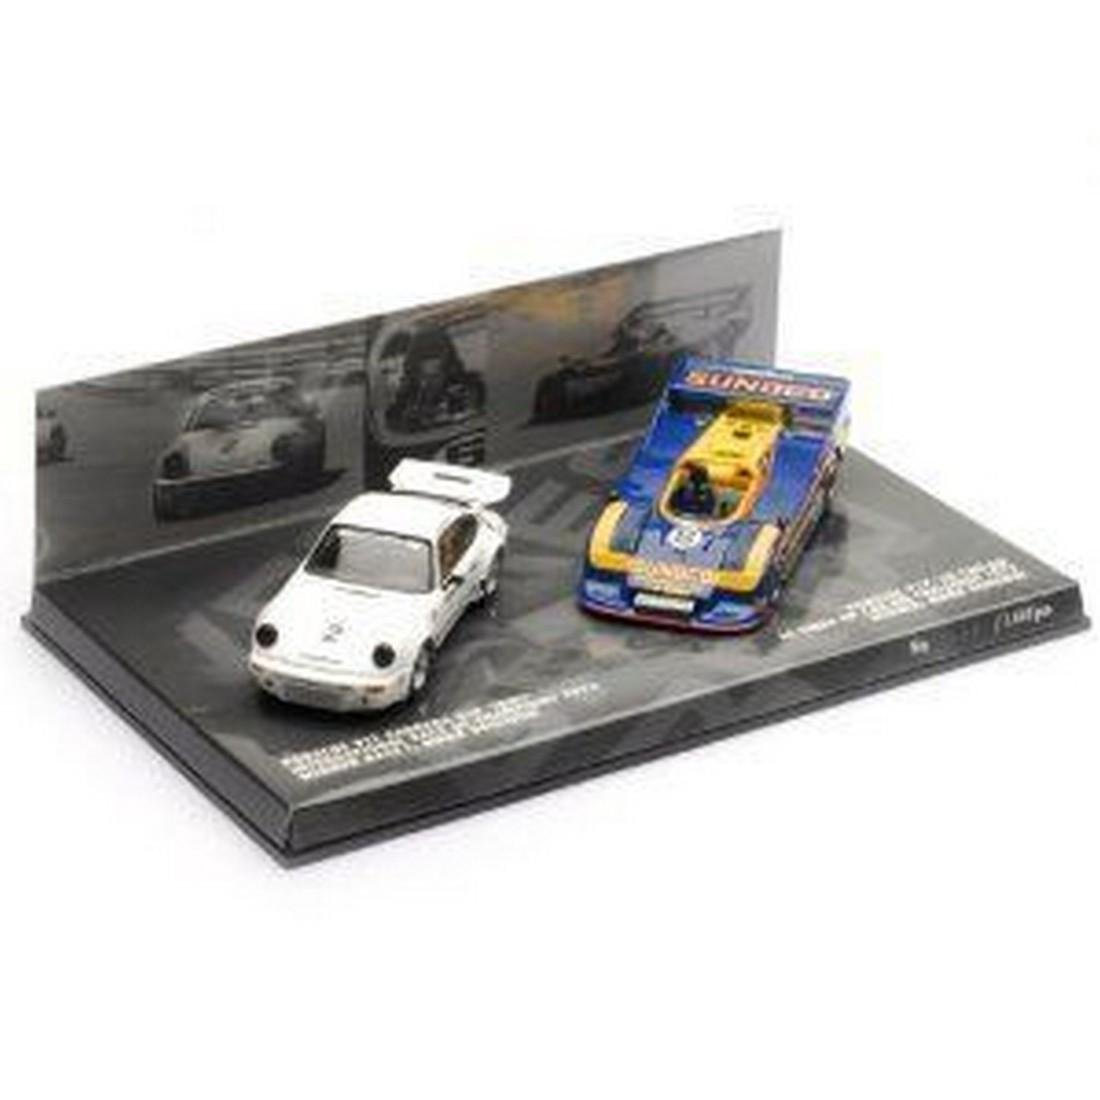 Minichamps Scale 1:43 Porsche 911 917 Mark Donohue 1973